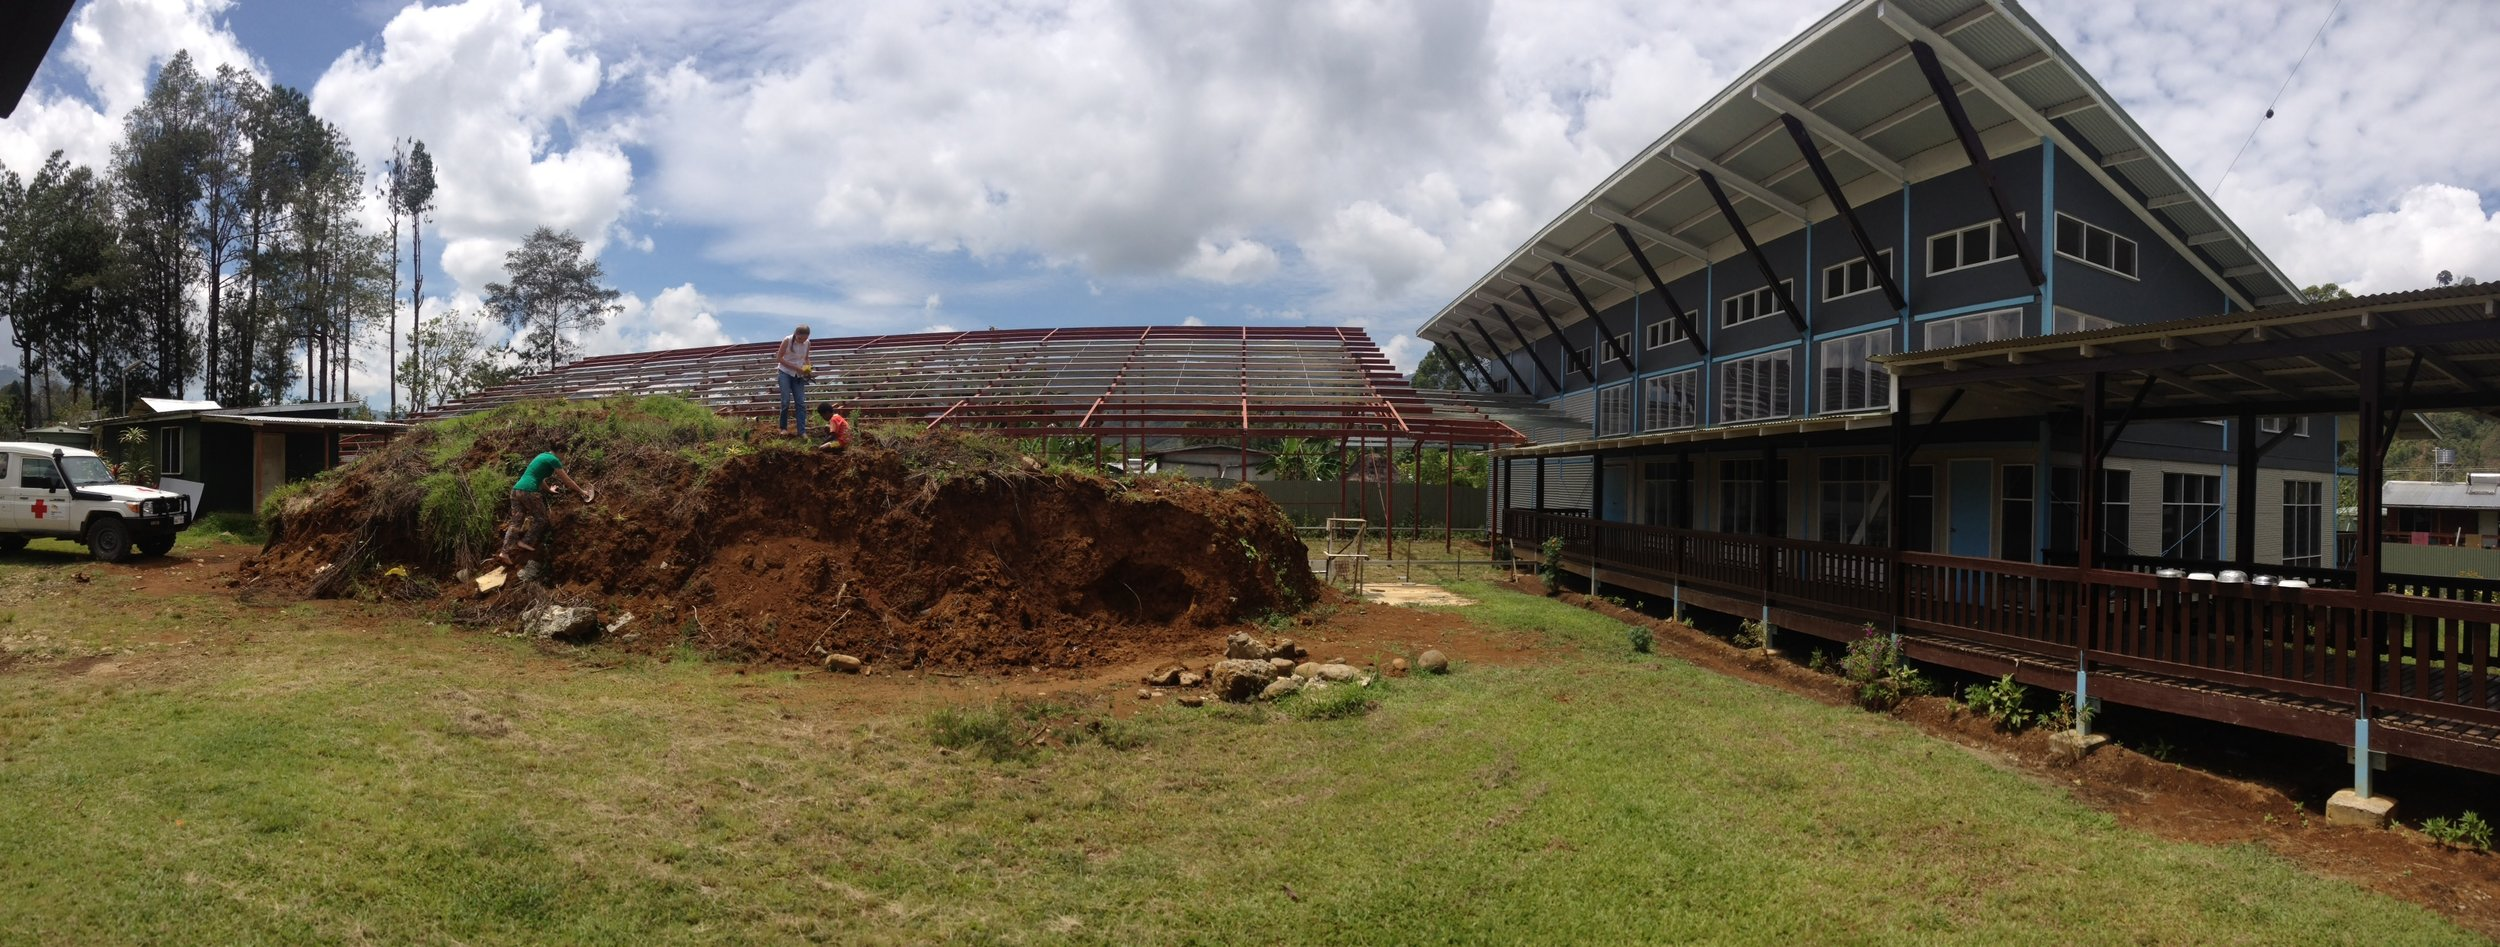 Maternity wing and new construction